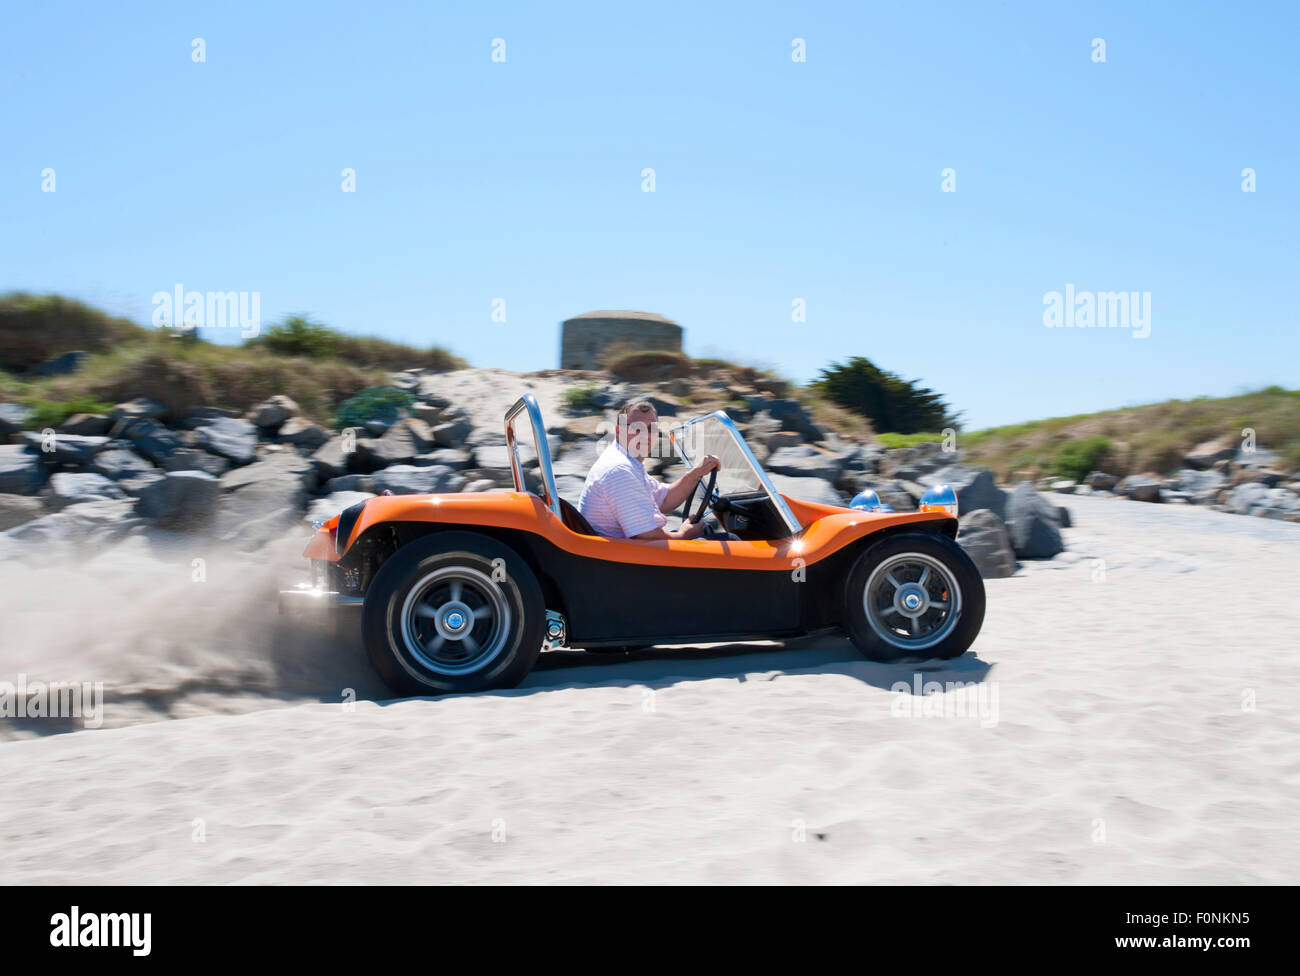 beach buggy on a sandy beach vw beetle based dune buggy car stock photo royalty free image. Black Bedroom Furniture Sets. Home Design Ideas